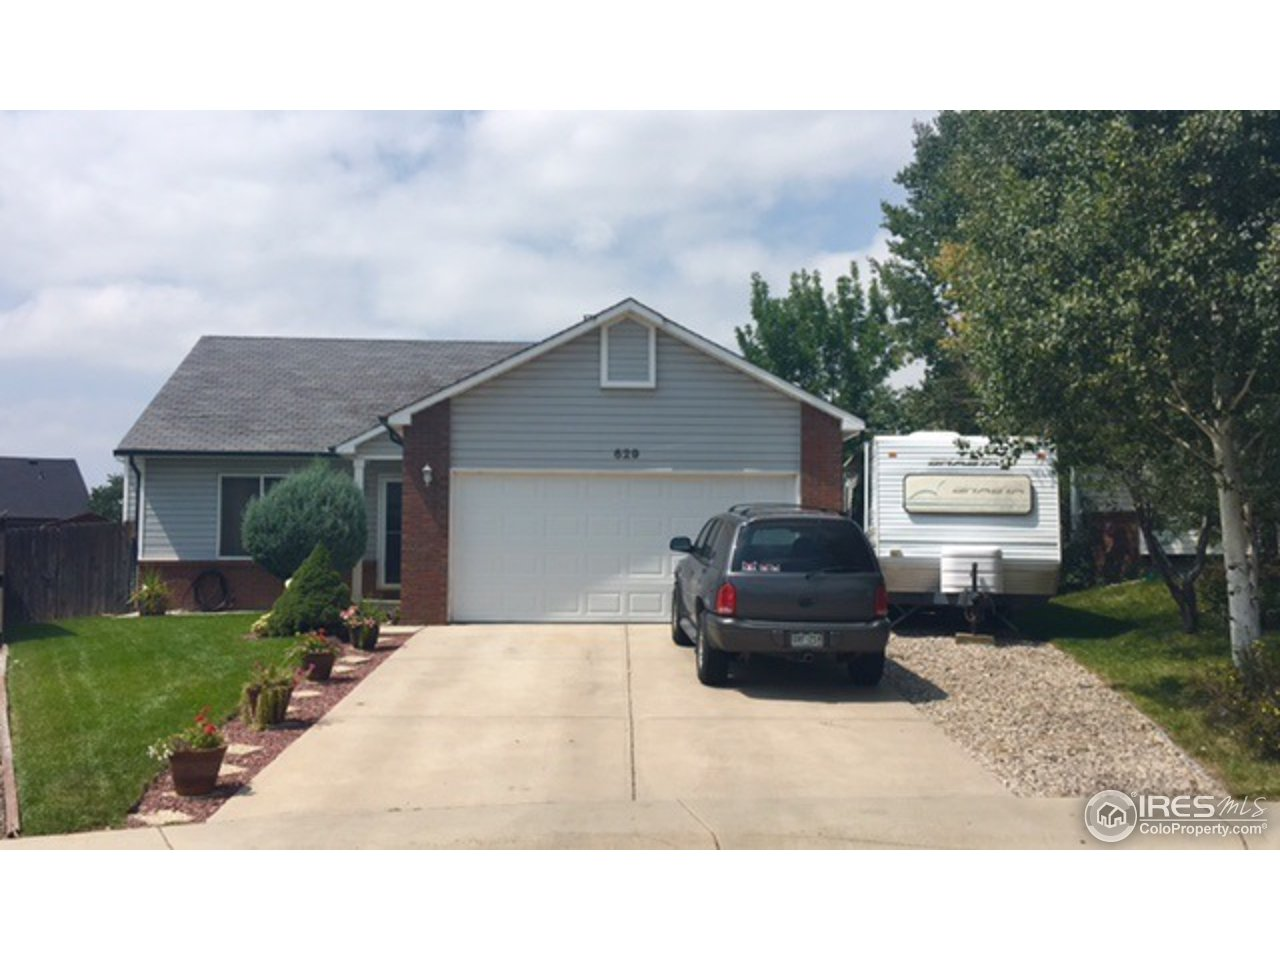 629 Brewer Dr, Fort Collins CO 80524